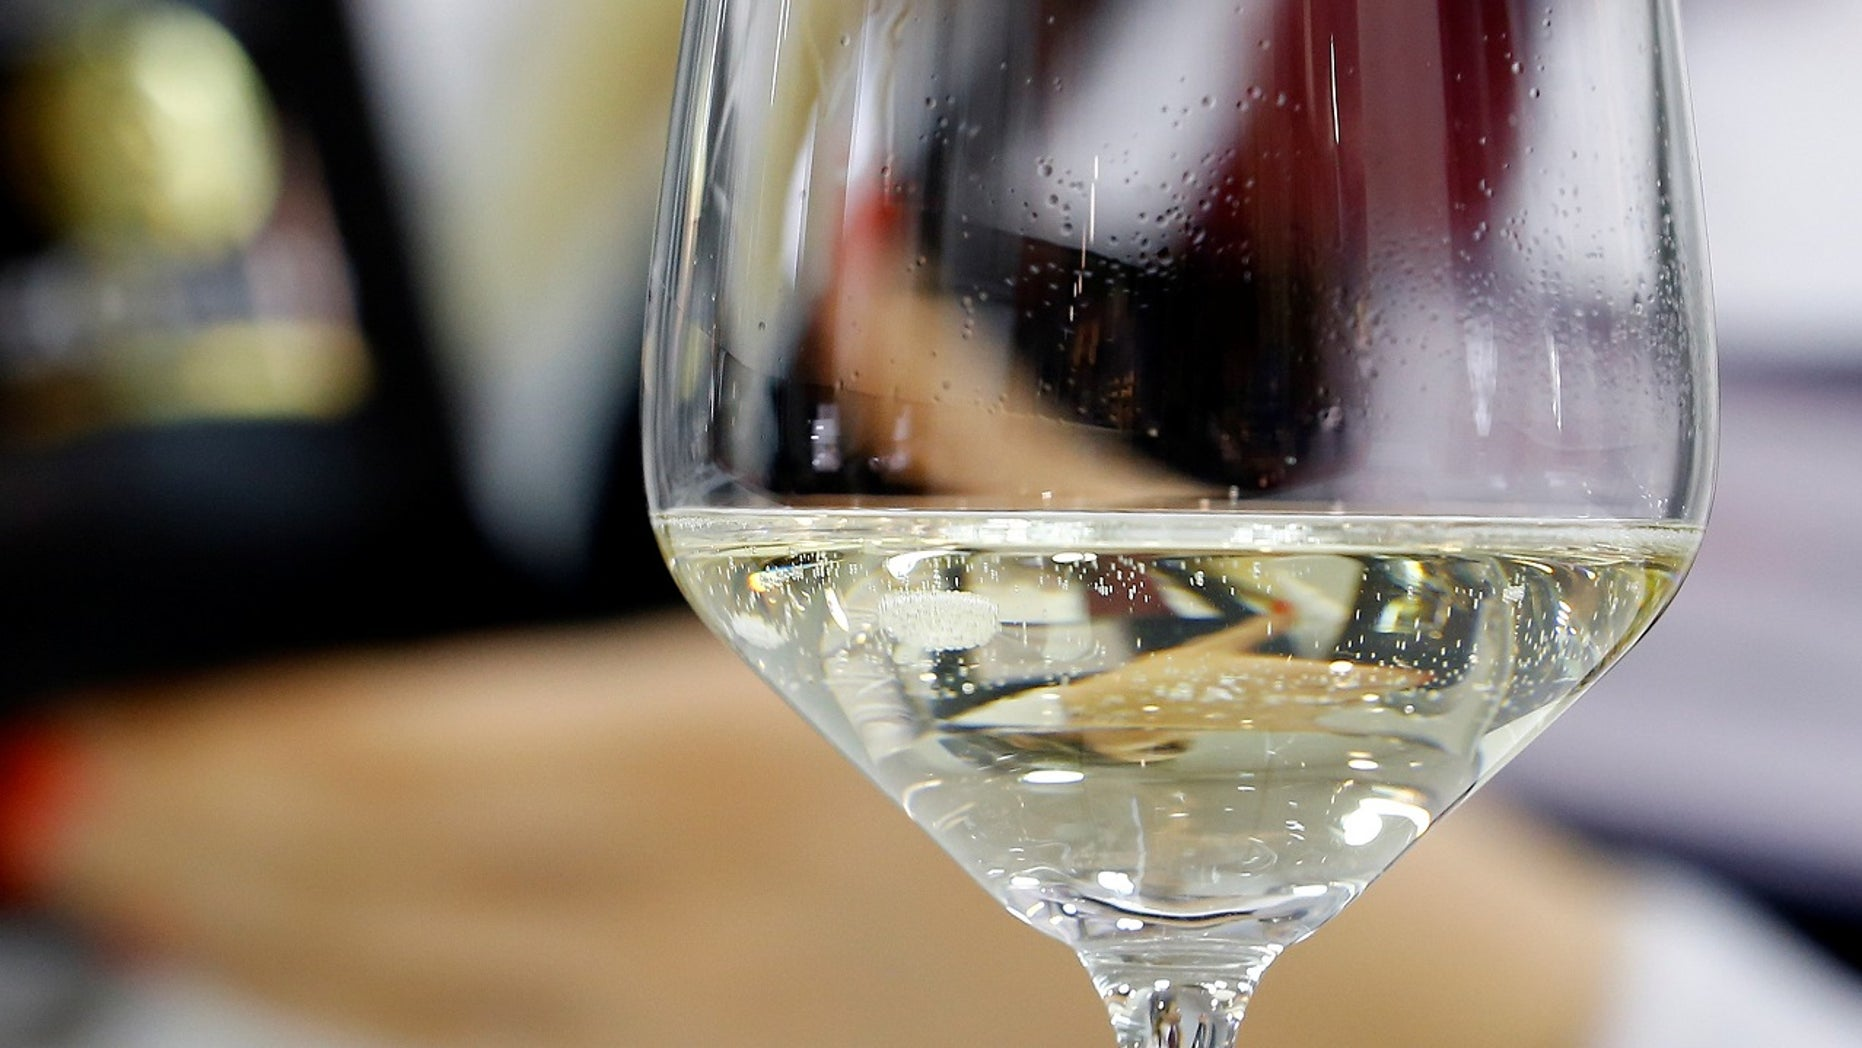 """A Canadian man sued an airline, accusing it of falsely marketed """"Champagne service"""" when it served sparkling wine."""